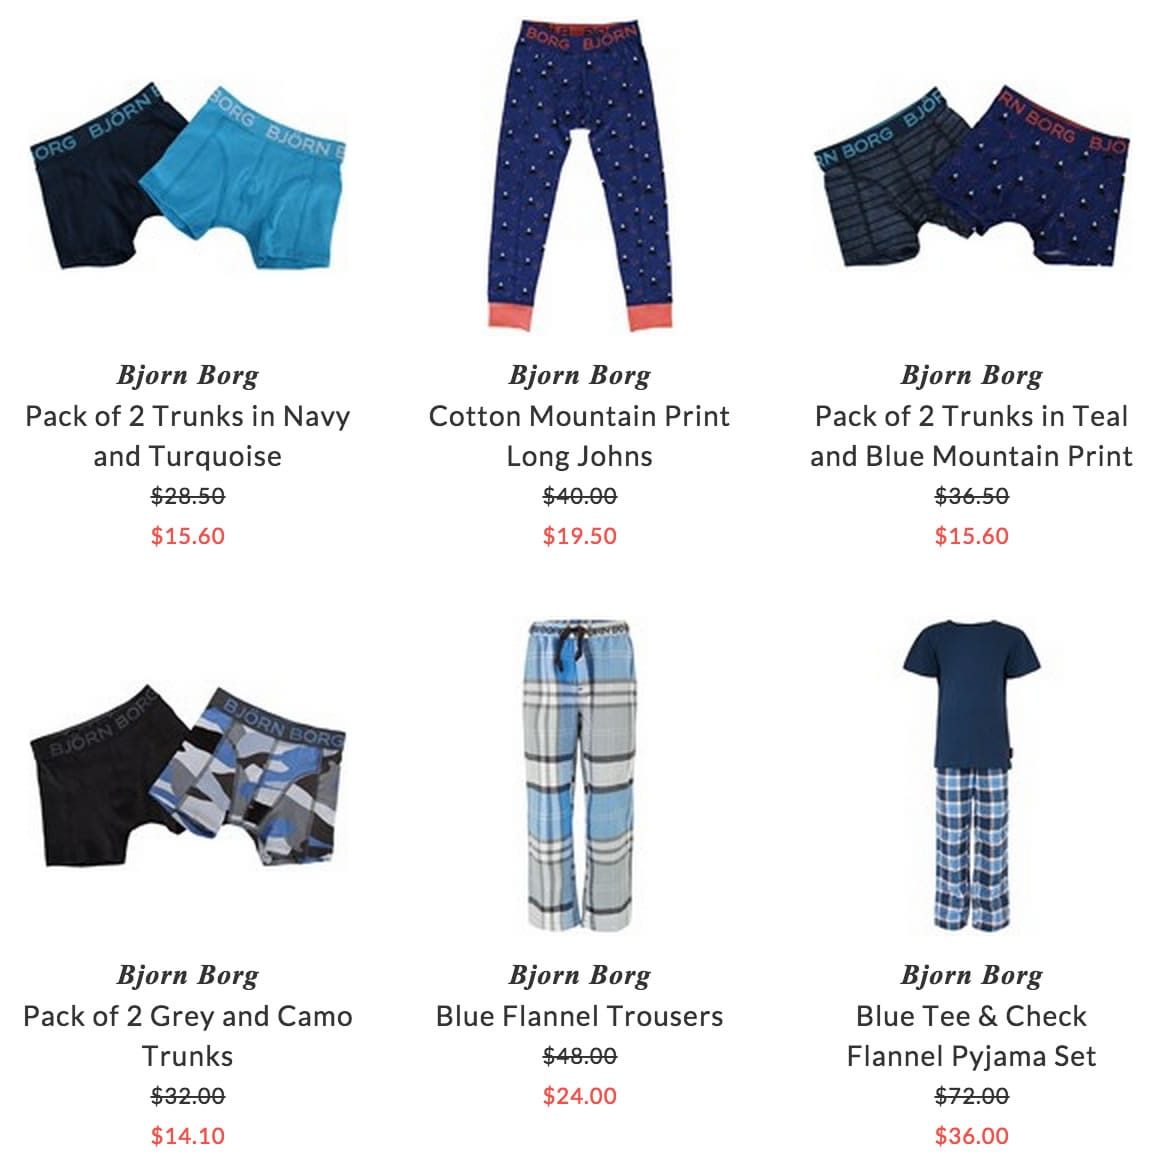 Bjorn Borg children underwear & accessories